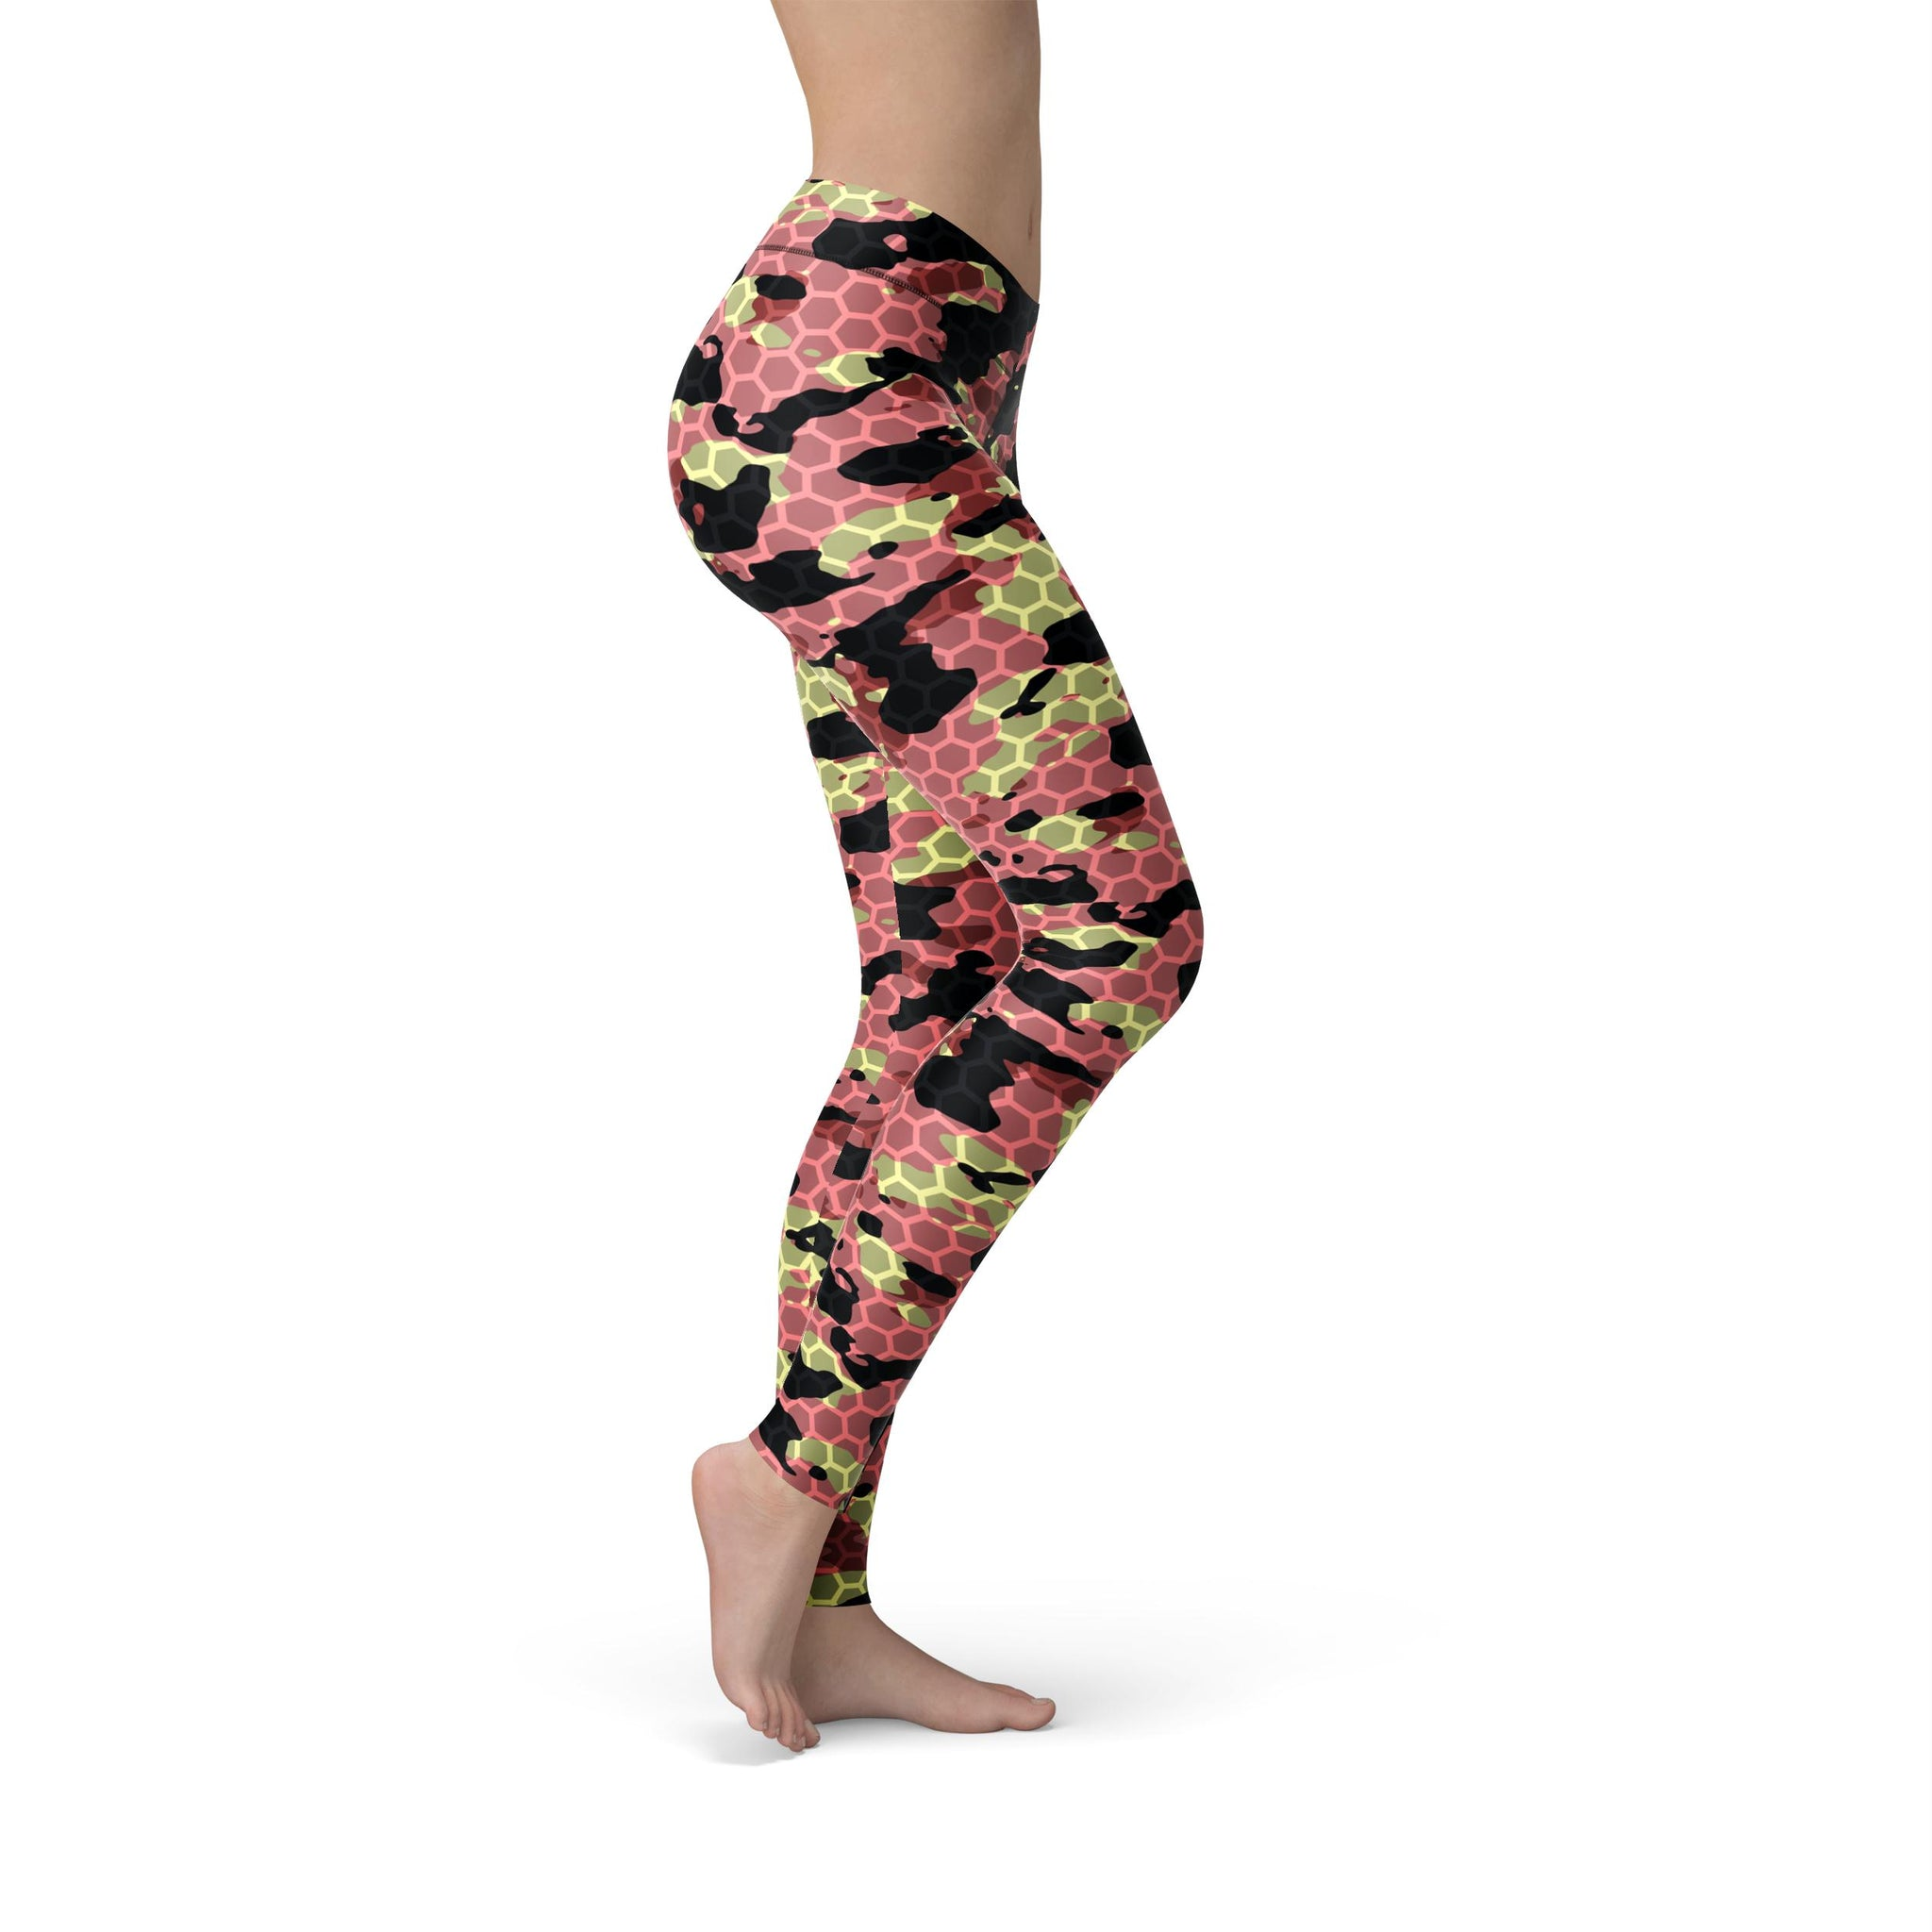 High-Waist Zen Watermelon Rush Camouflage Legging